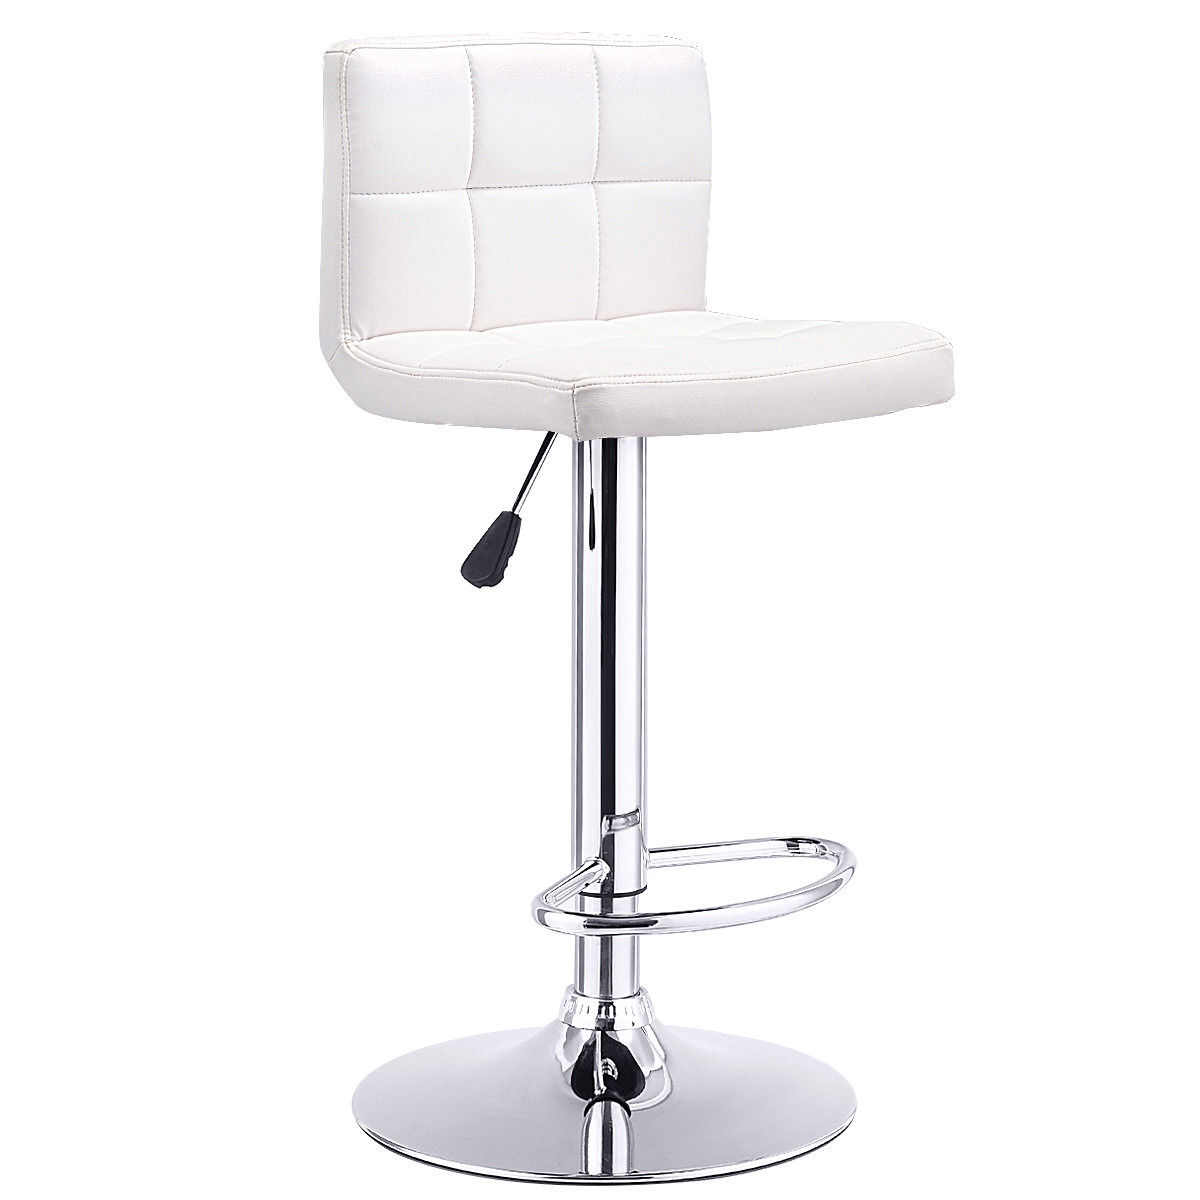 Set of 2 PU Leather Bar Stools Adjustable Height Swivel Pub Chair Kitchen Bistro